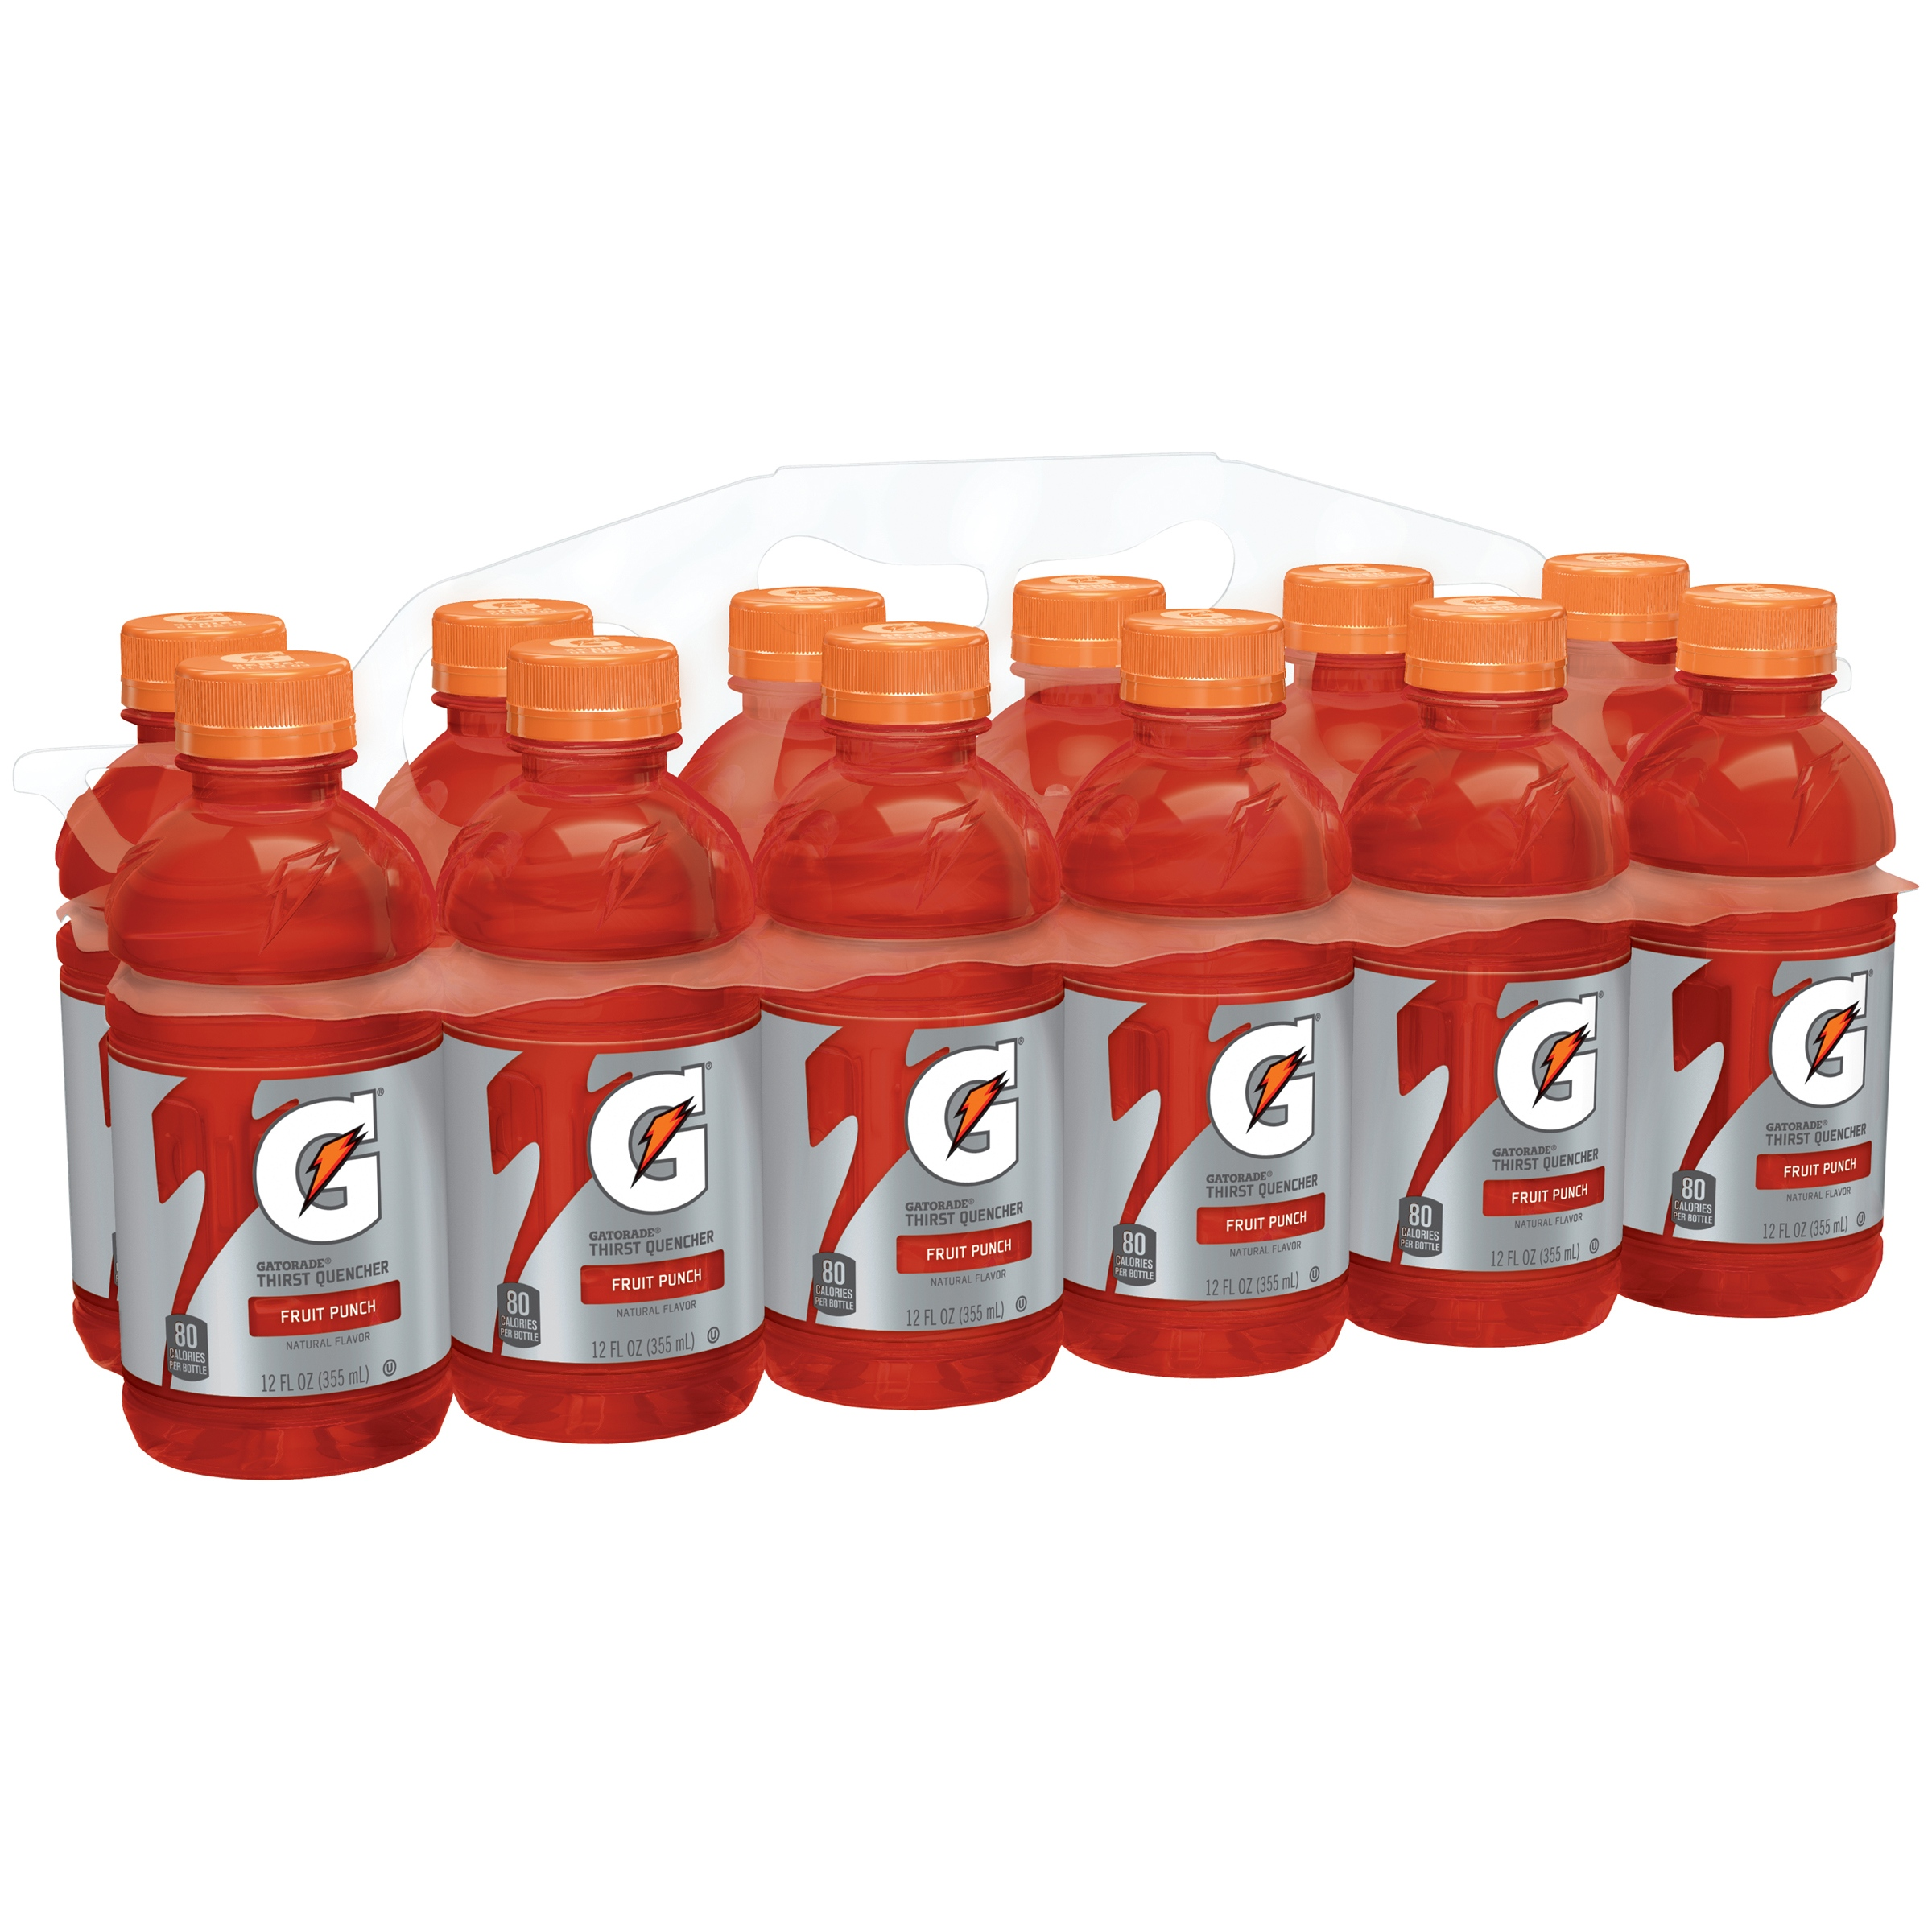 Gatorade Thirst Quencher Fierce Sports Drink, Fruit Punch, 12 Fl Oz, 12 Ct